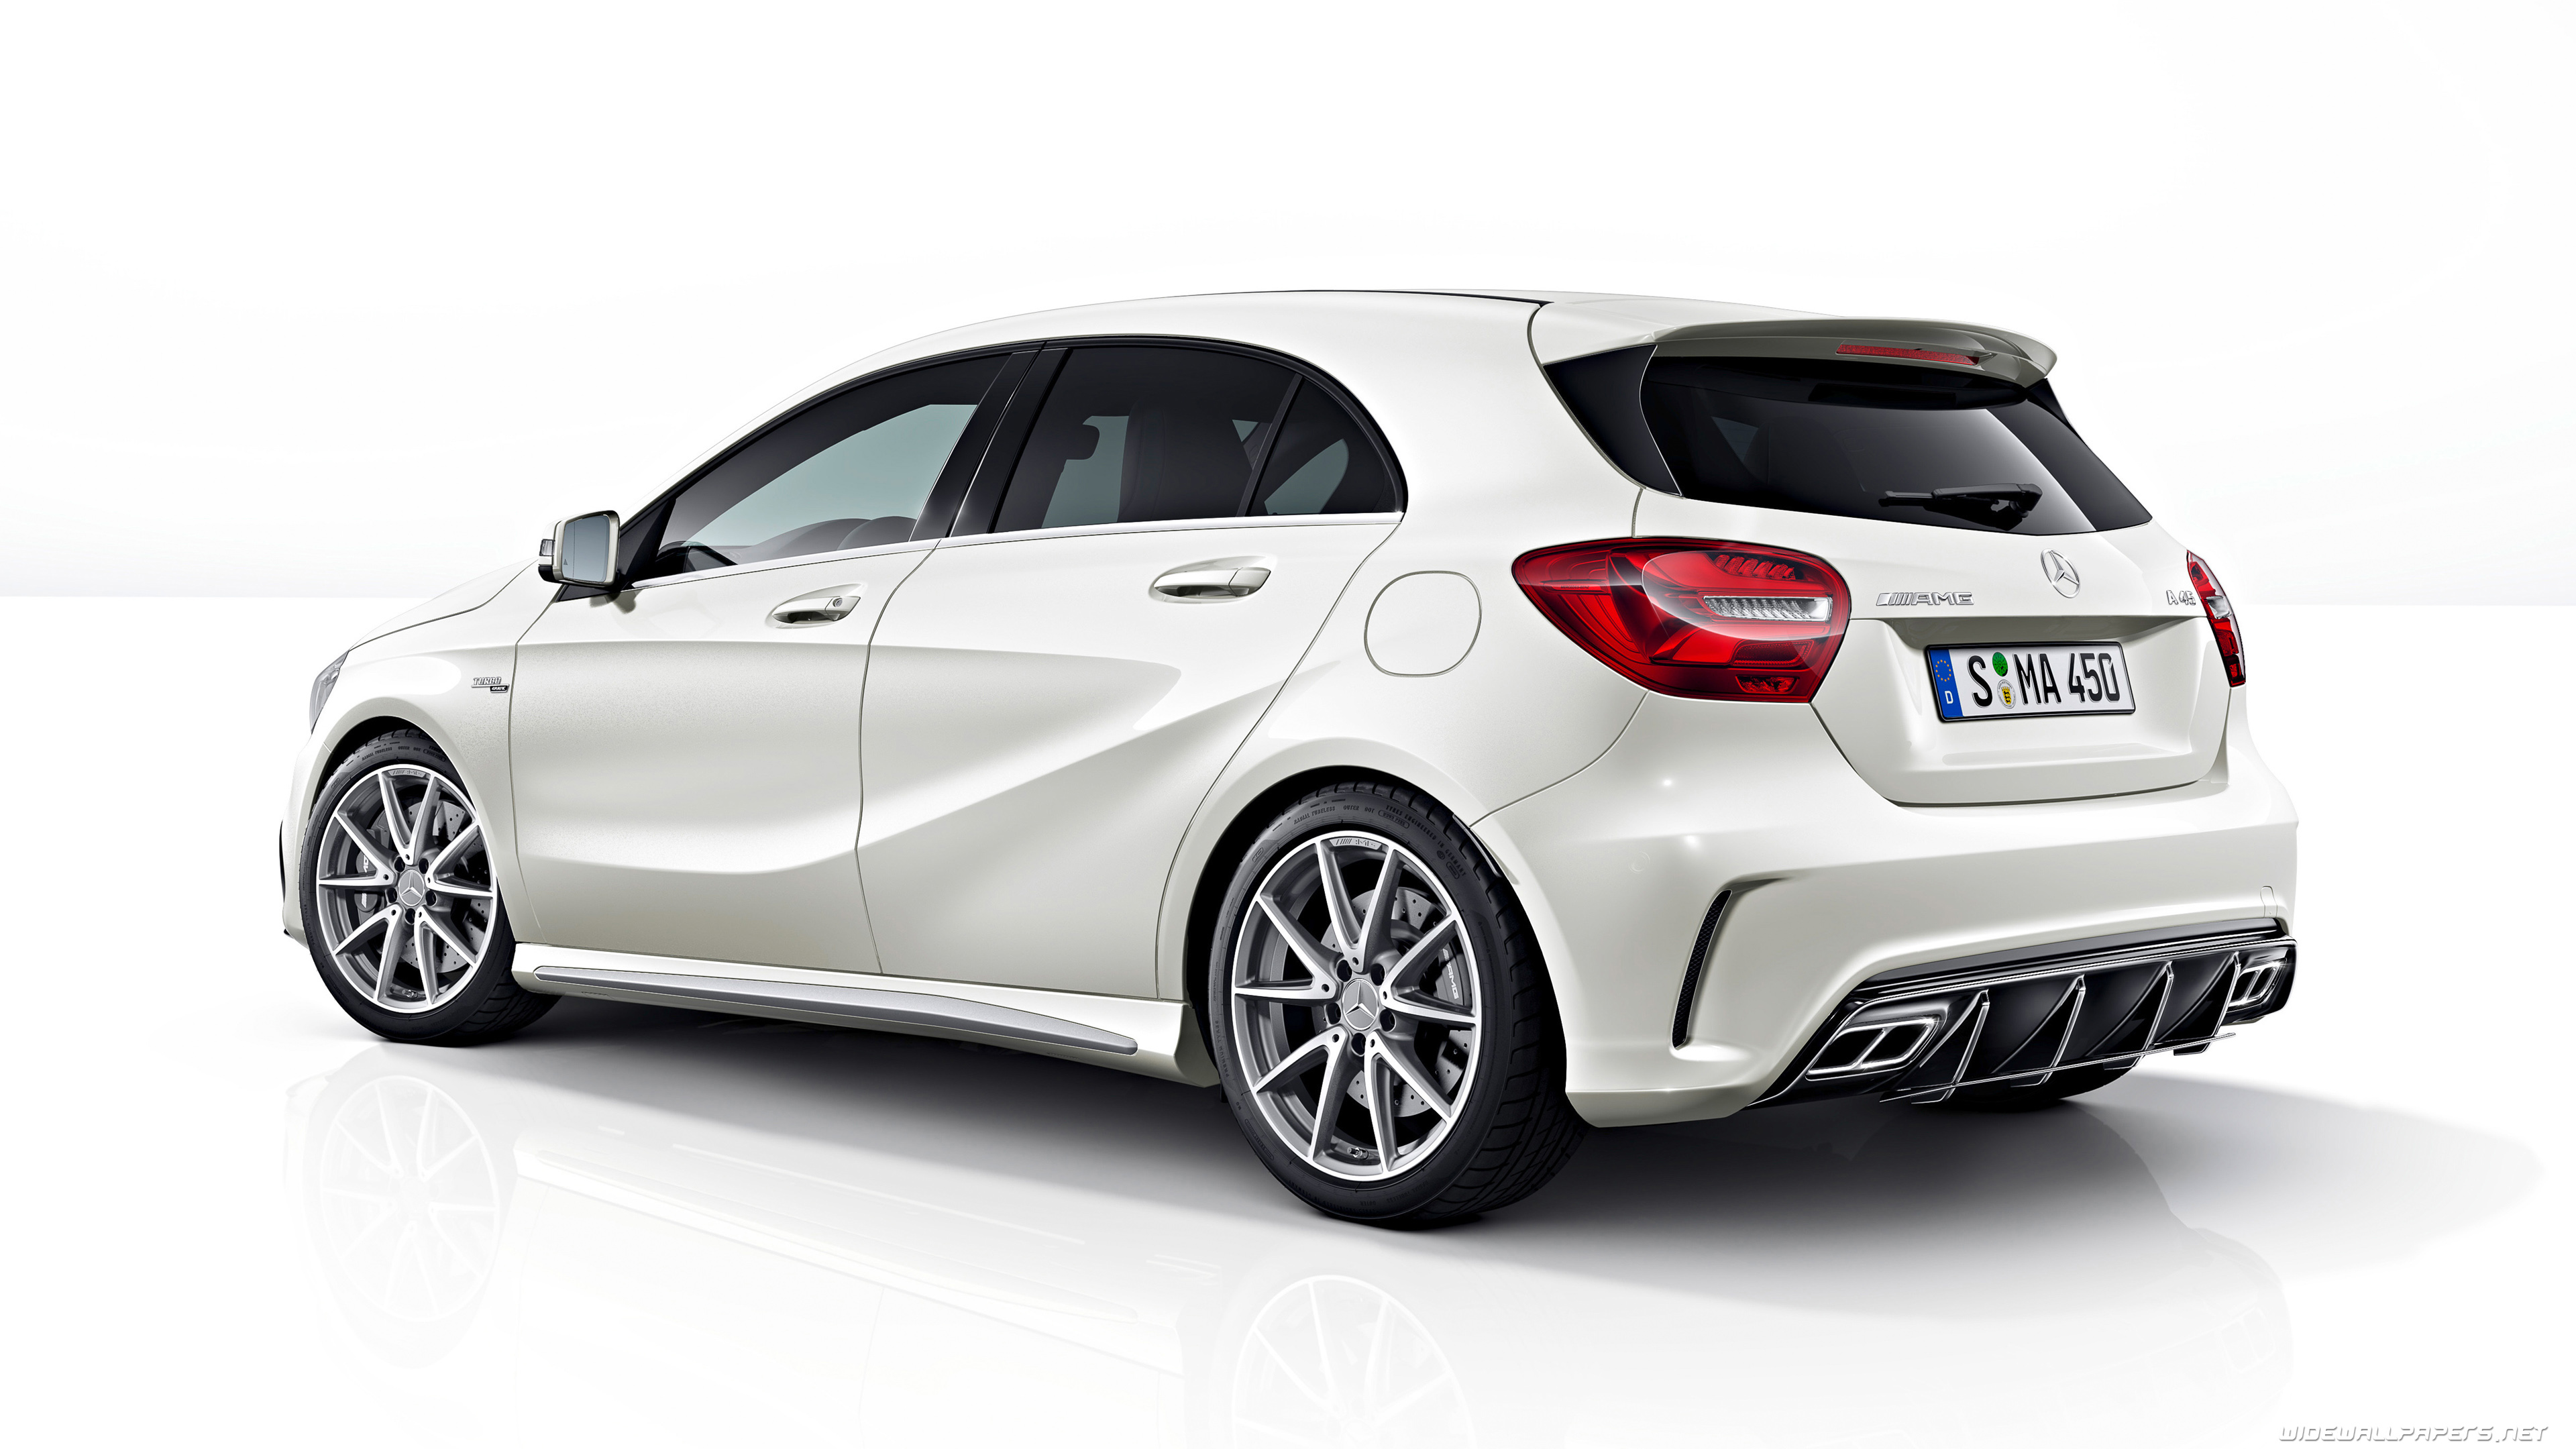 Mercedes benz a class cars desktop wallpapers 4k ultra hd for Mercedes benz a 45 amg 4matic